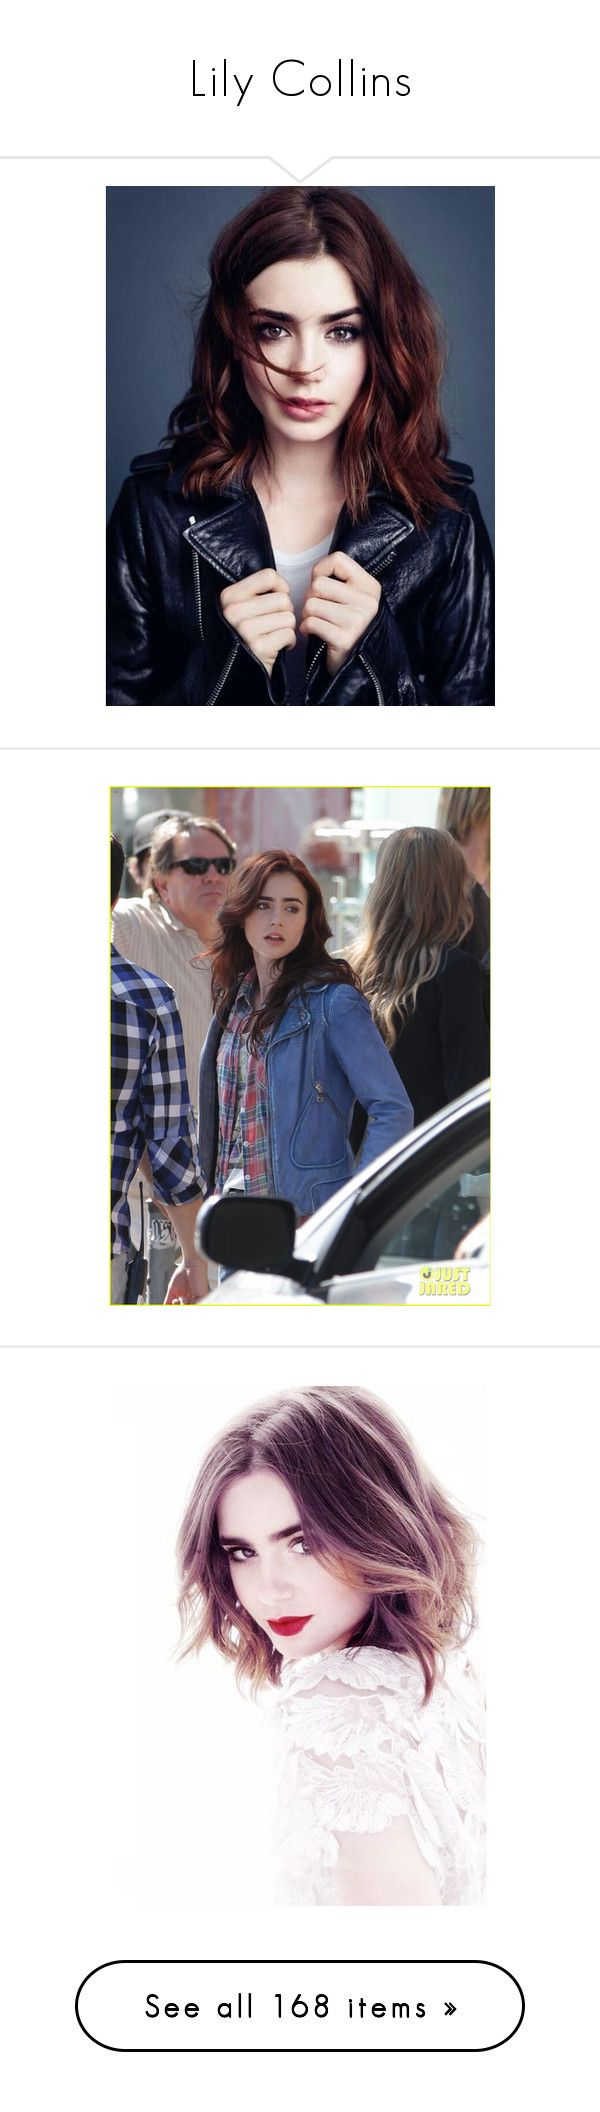 """""""Lily Collins"""" by starlightpa ❤ liked on Polyvore featuring lily collins, people, photos, pictures, clary fray, mortal instruments, hair, girls, lily and people - lily collins"""